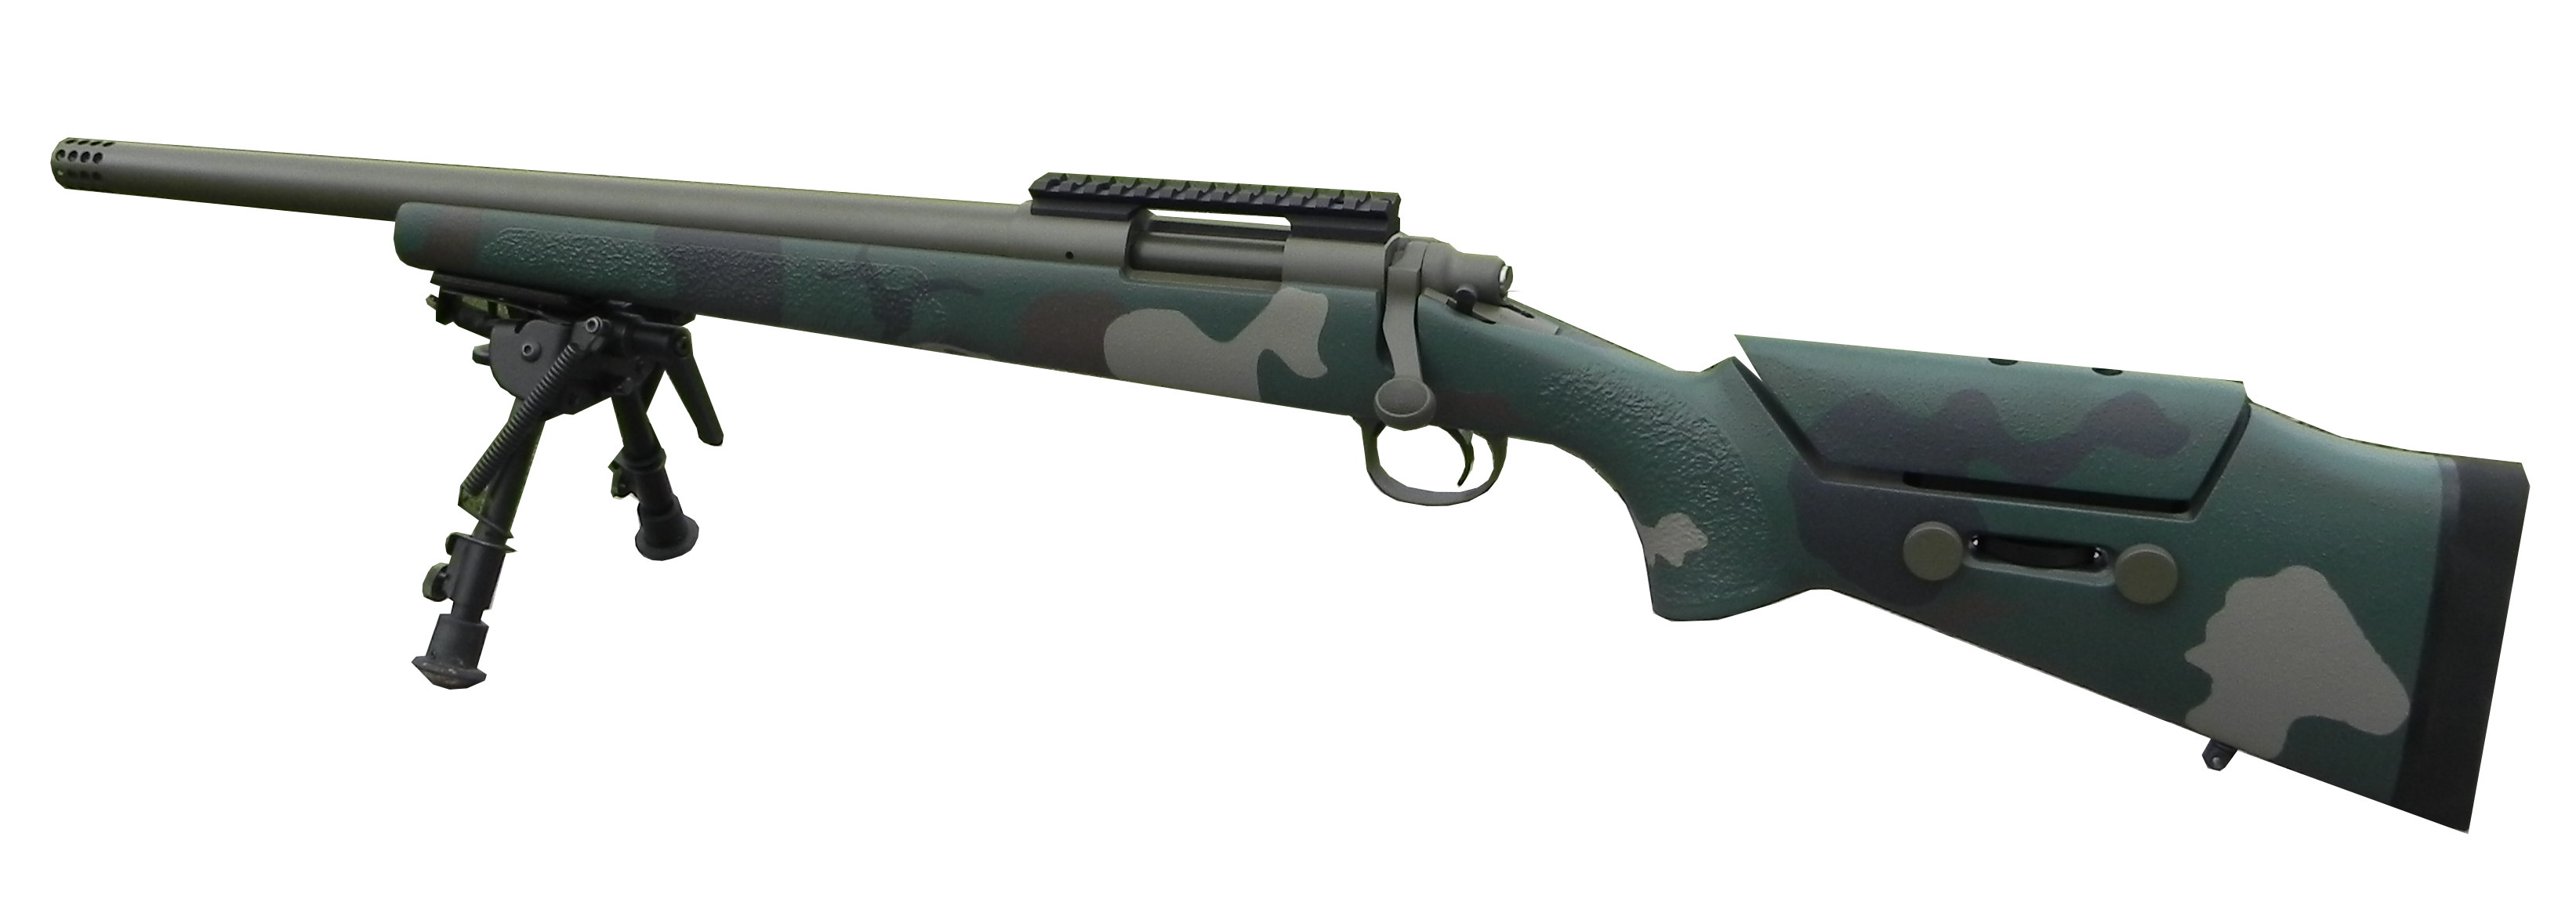 Remington 700 tactical stock options